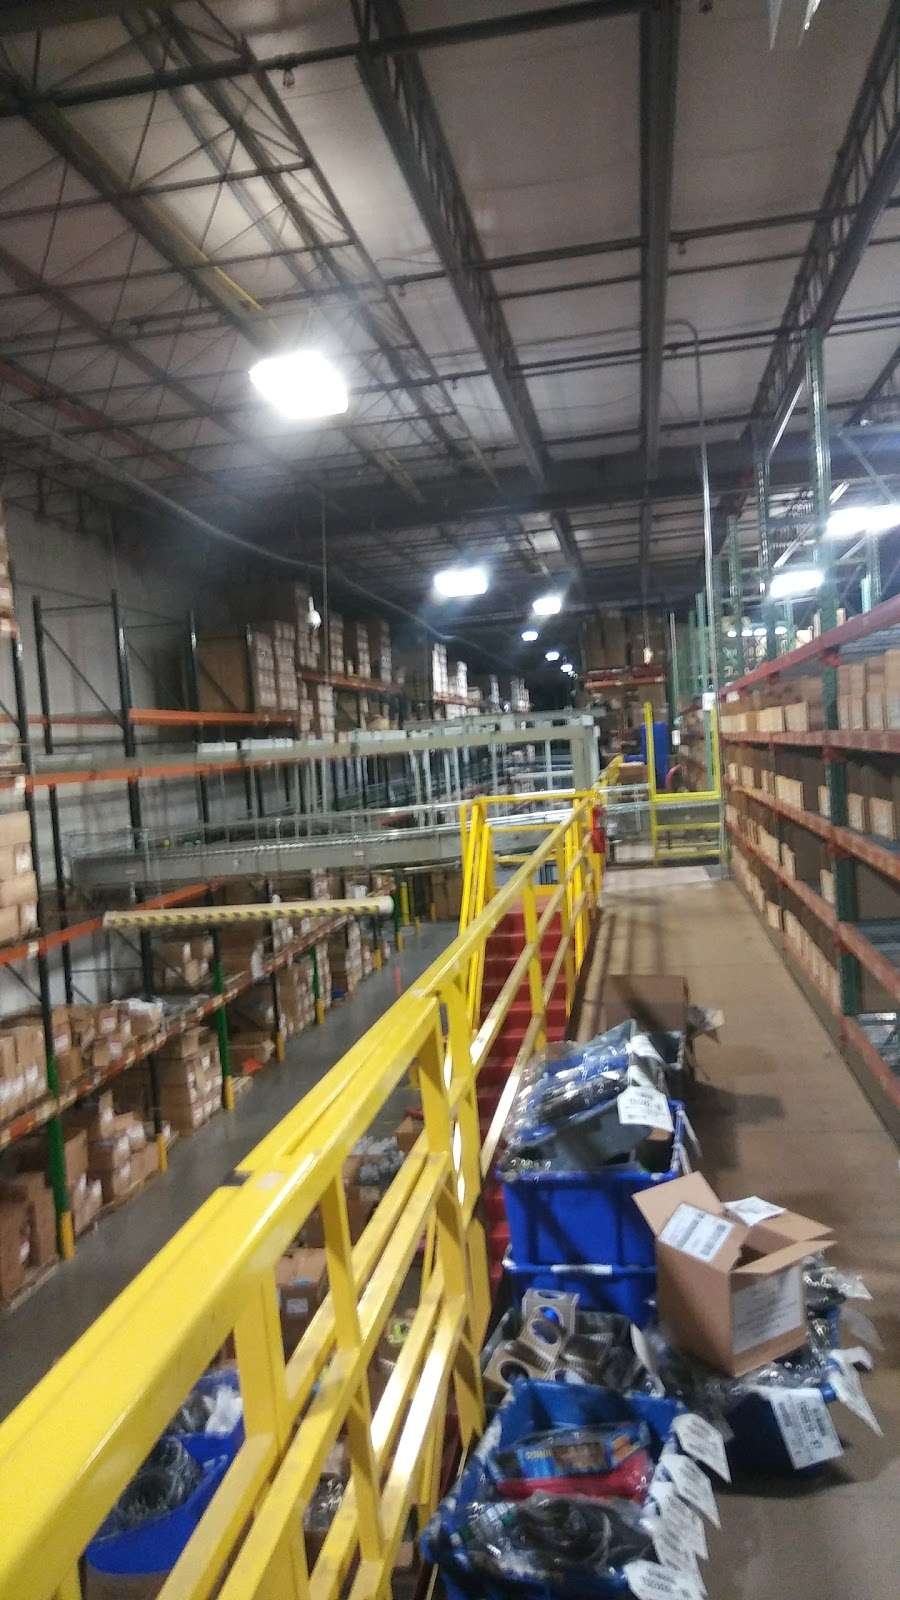 BDA Midwest Fulfillment Center - storage  | Photo 1 of 5 | Address: 1201 Perry Rd #101, Plainfield, IN 46168, USA | Phone: (800) 451-4764